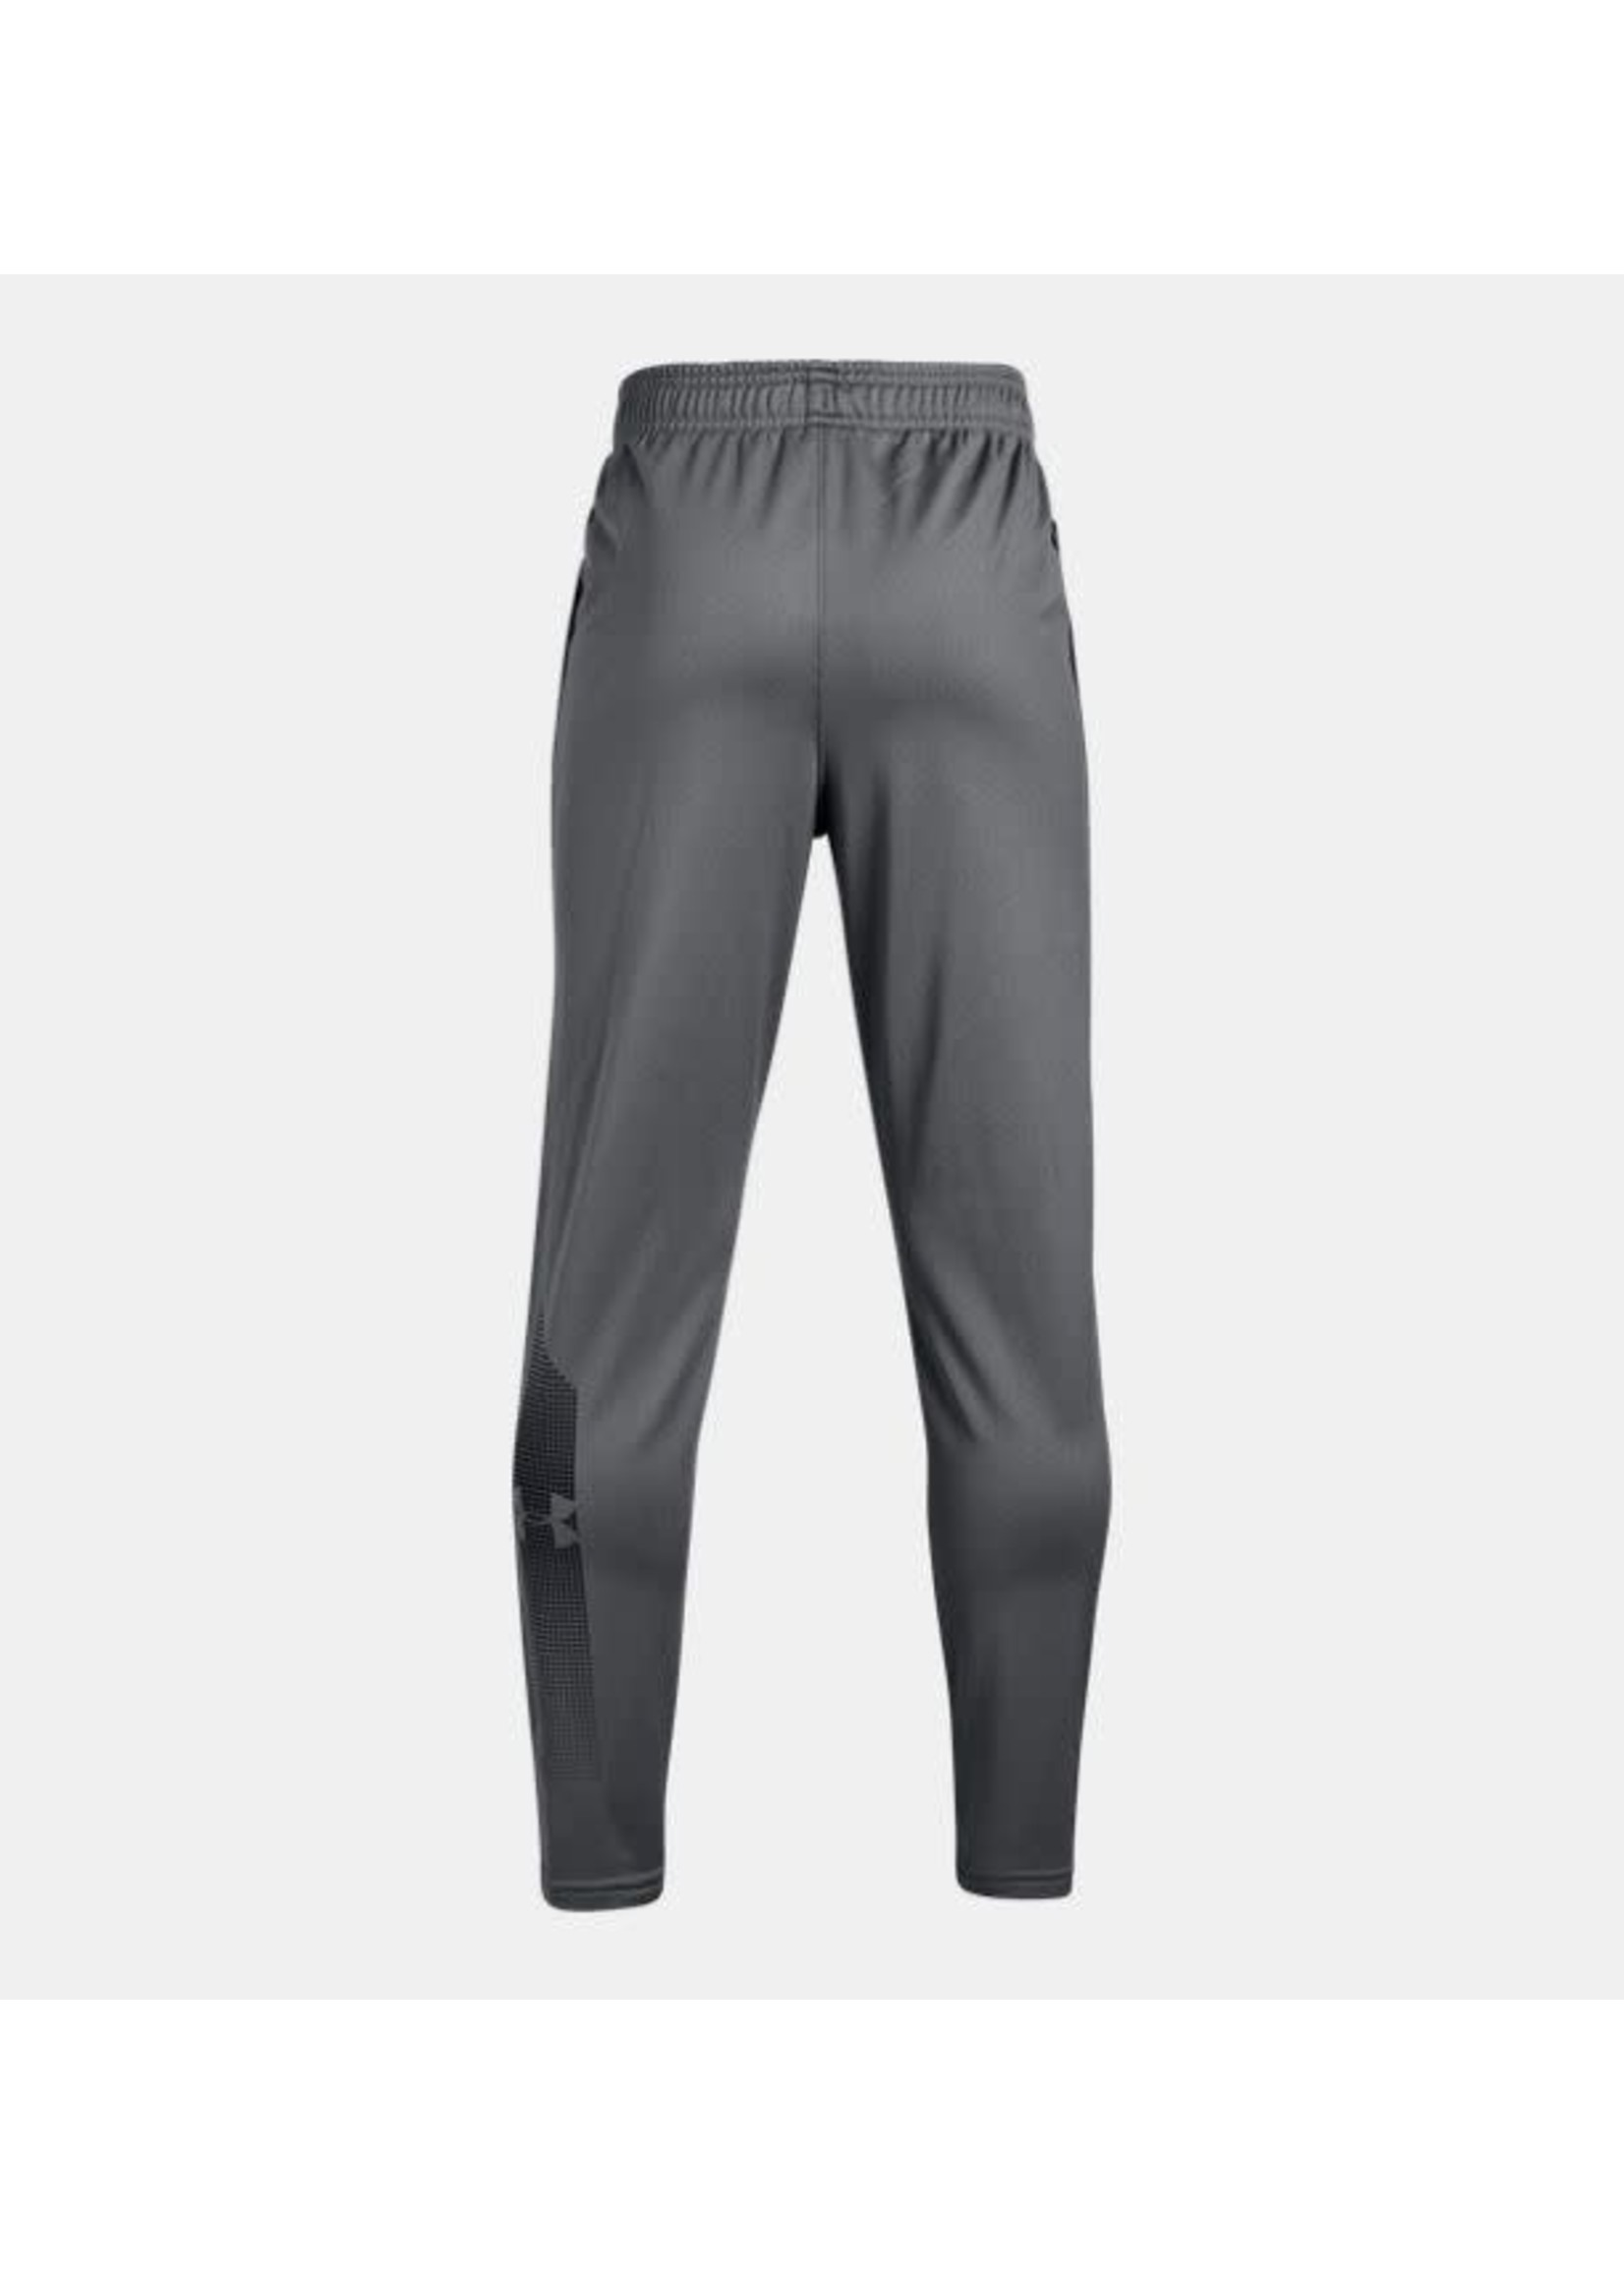 Under Armour BRAWLER TAPERED PANT 1331692